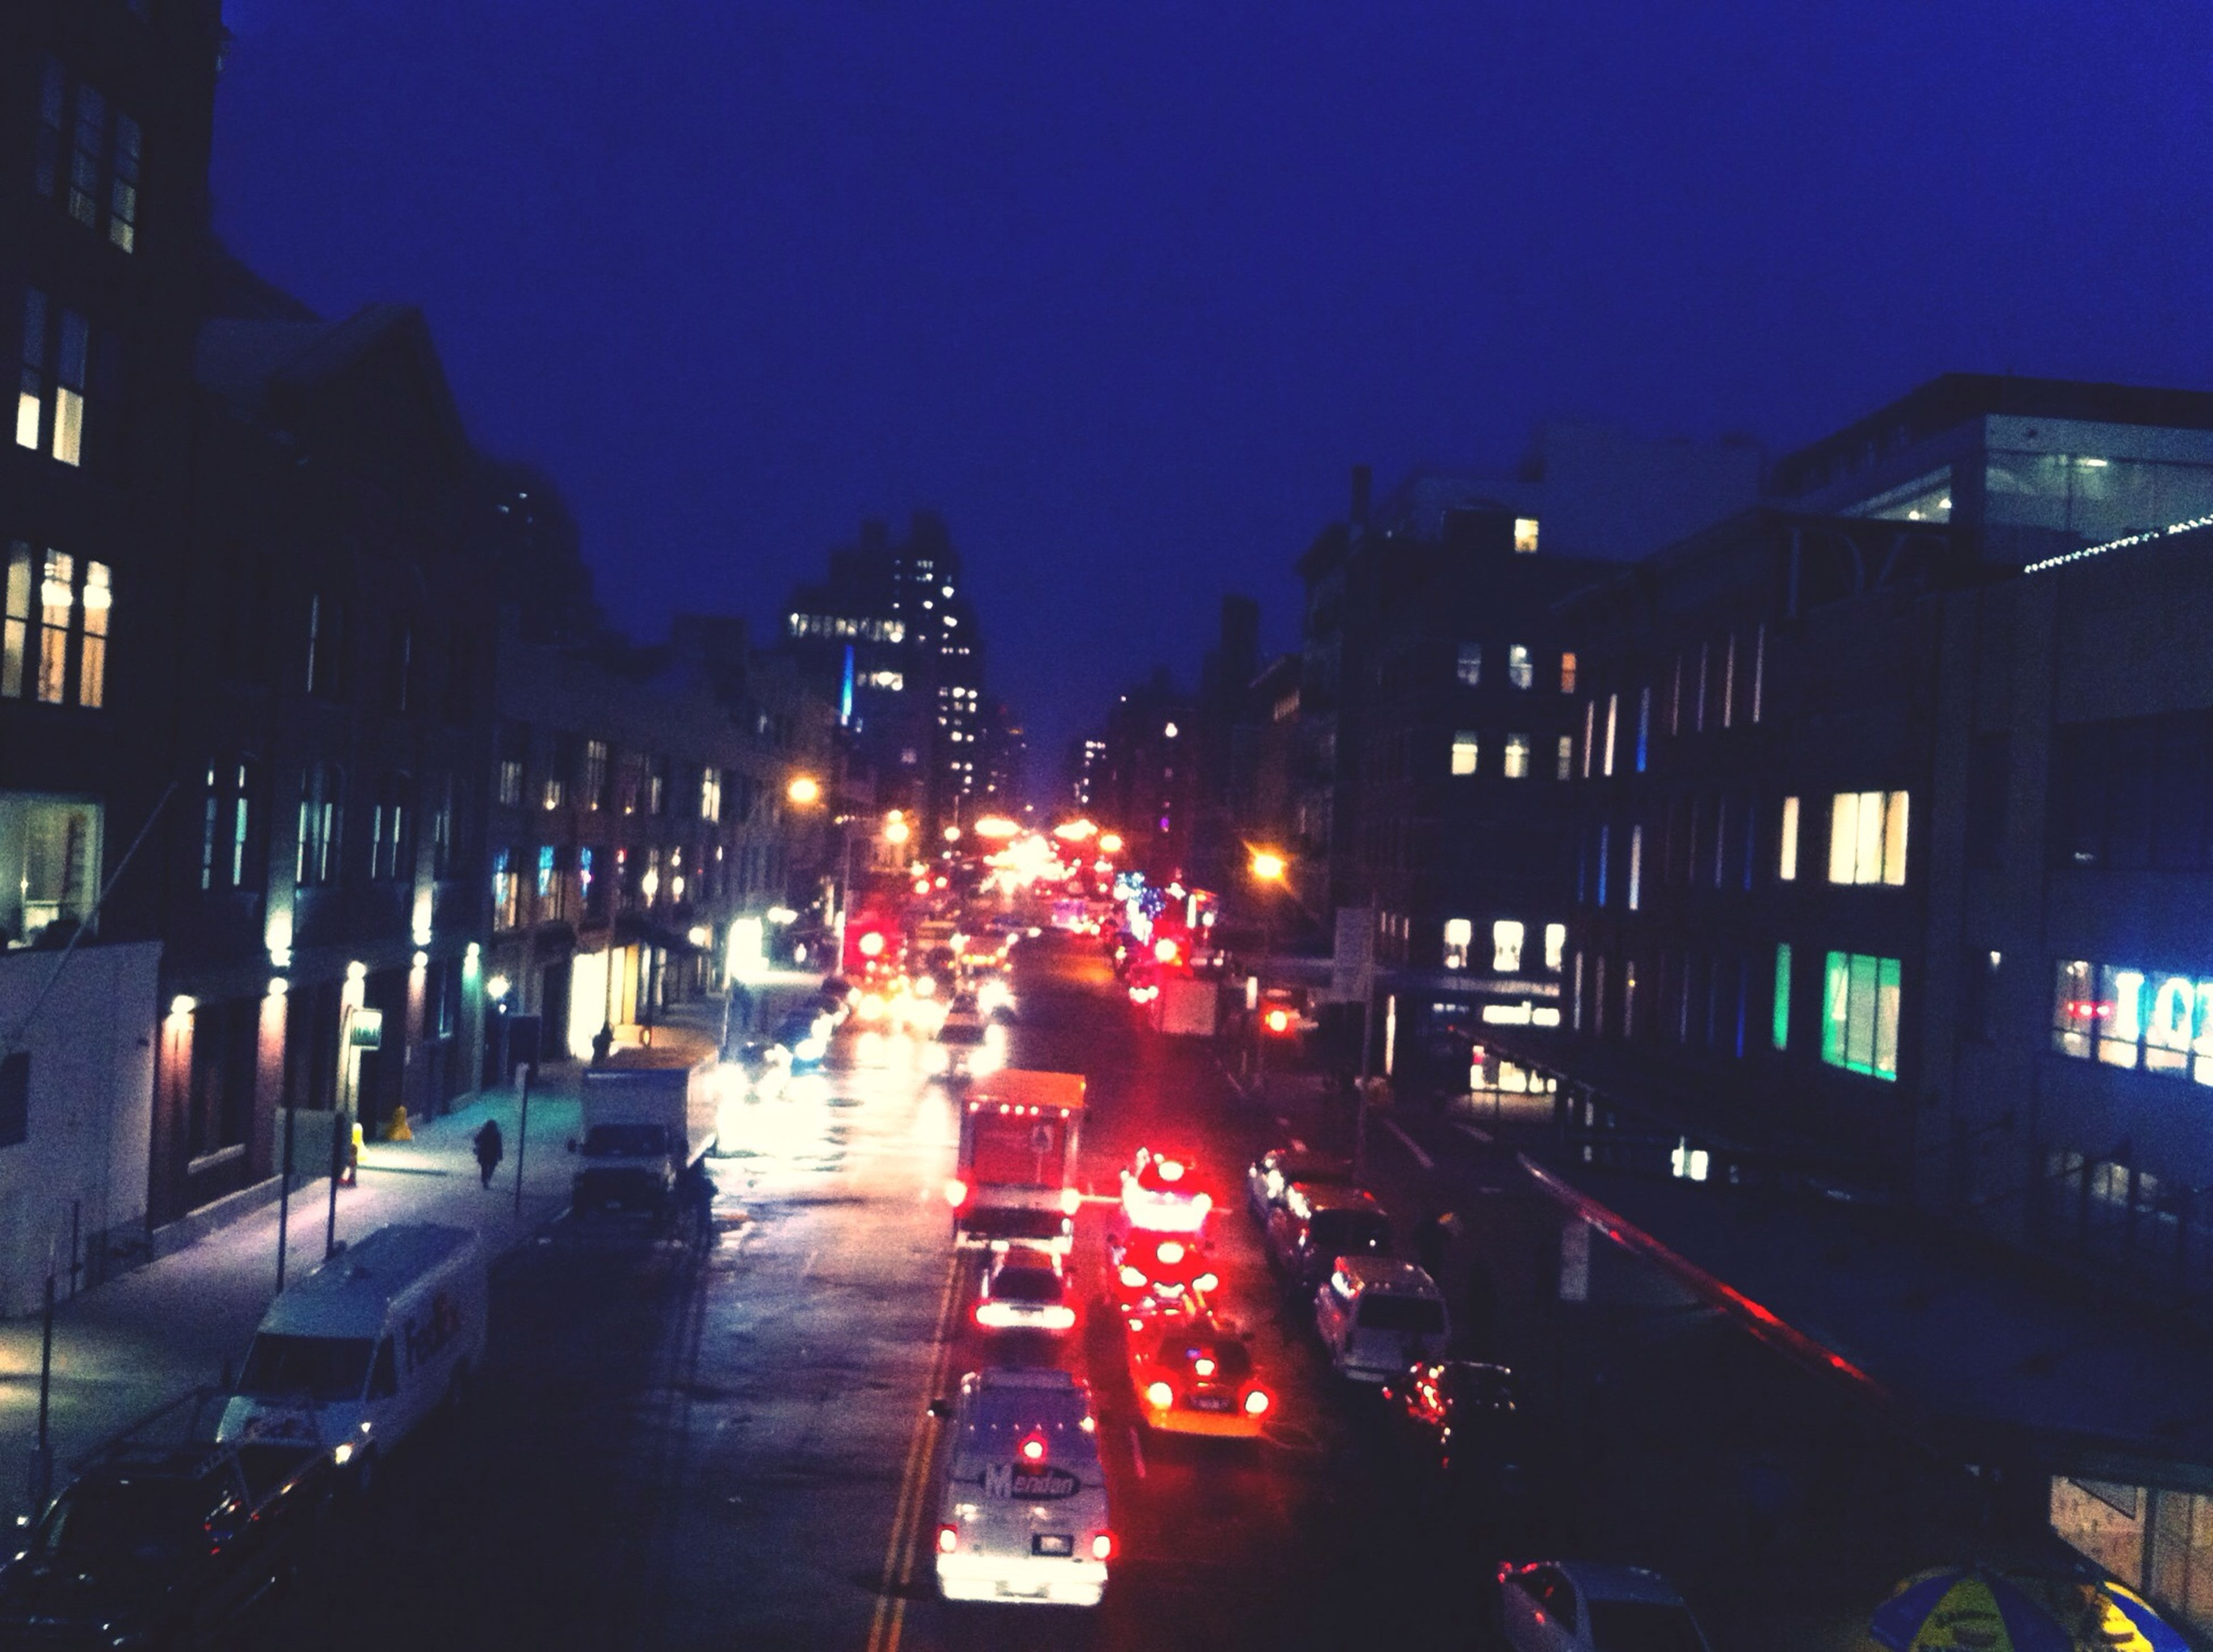 illuminated, transportation, night, mode of transport, land vehicle, building exterior, car, city, architecture, built structure, street, street light, sky, road, traffic, city life, city street, high angle view, parking, outdoors